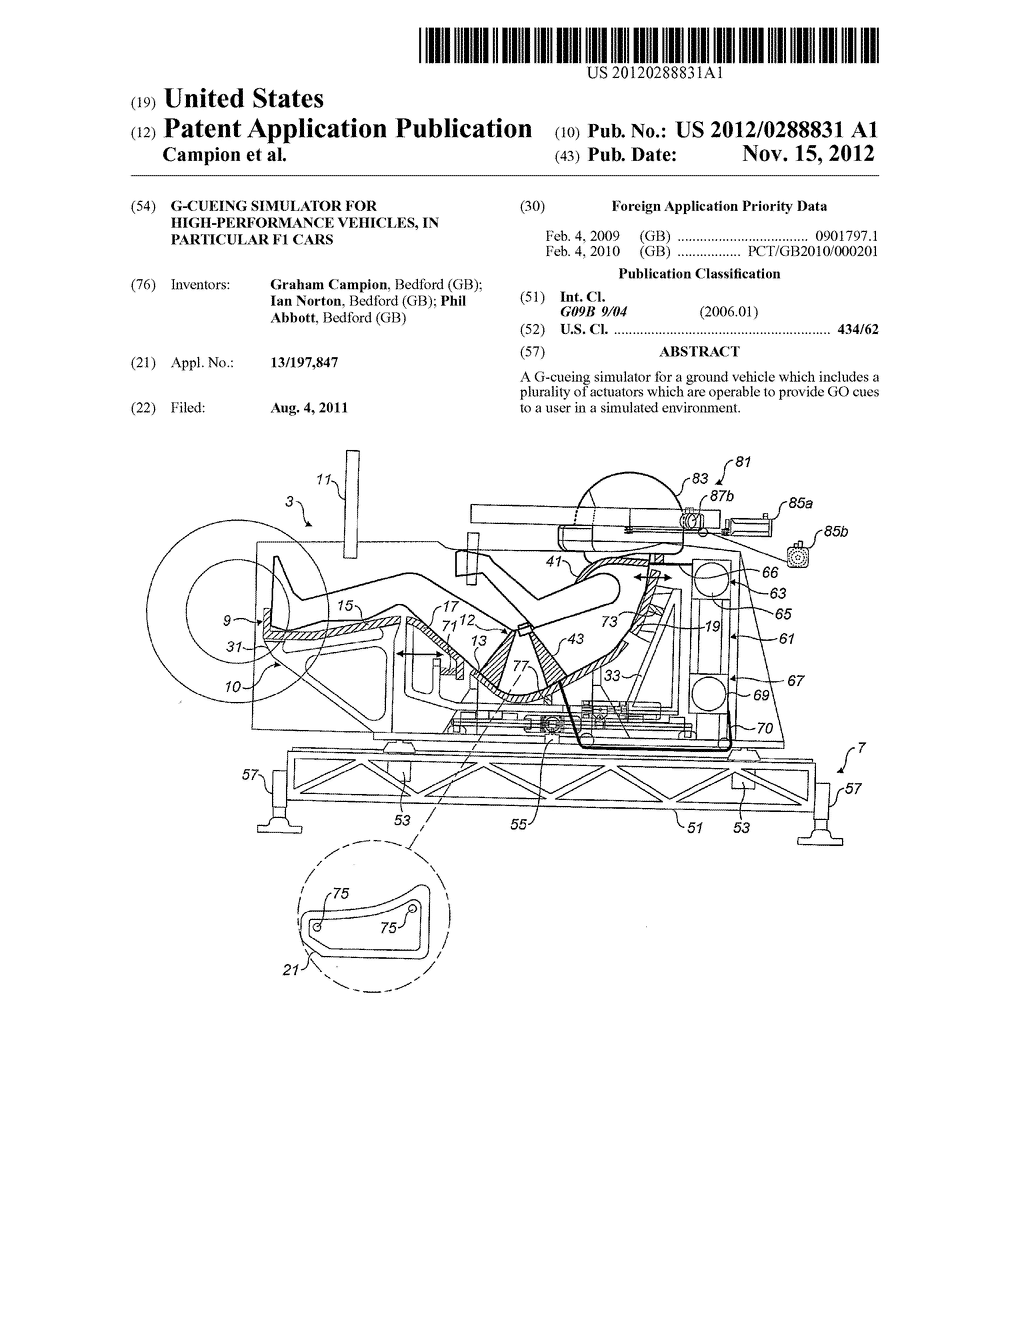 G Cueing Simulator For High Performance Vehicles In Particular F1 Engine Diagram Cars Schematic And Image 01